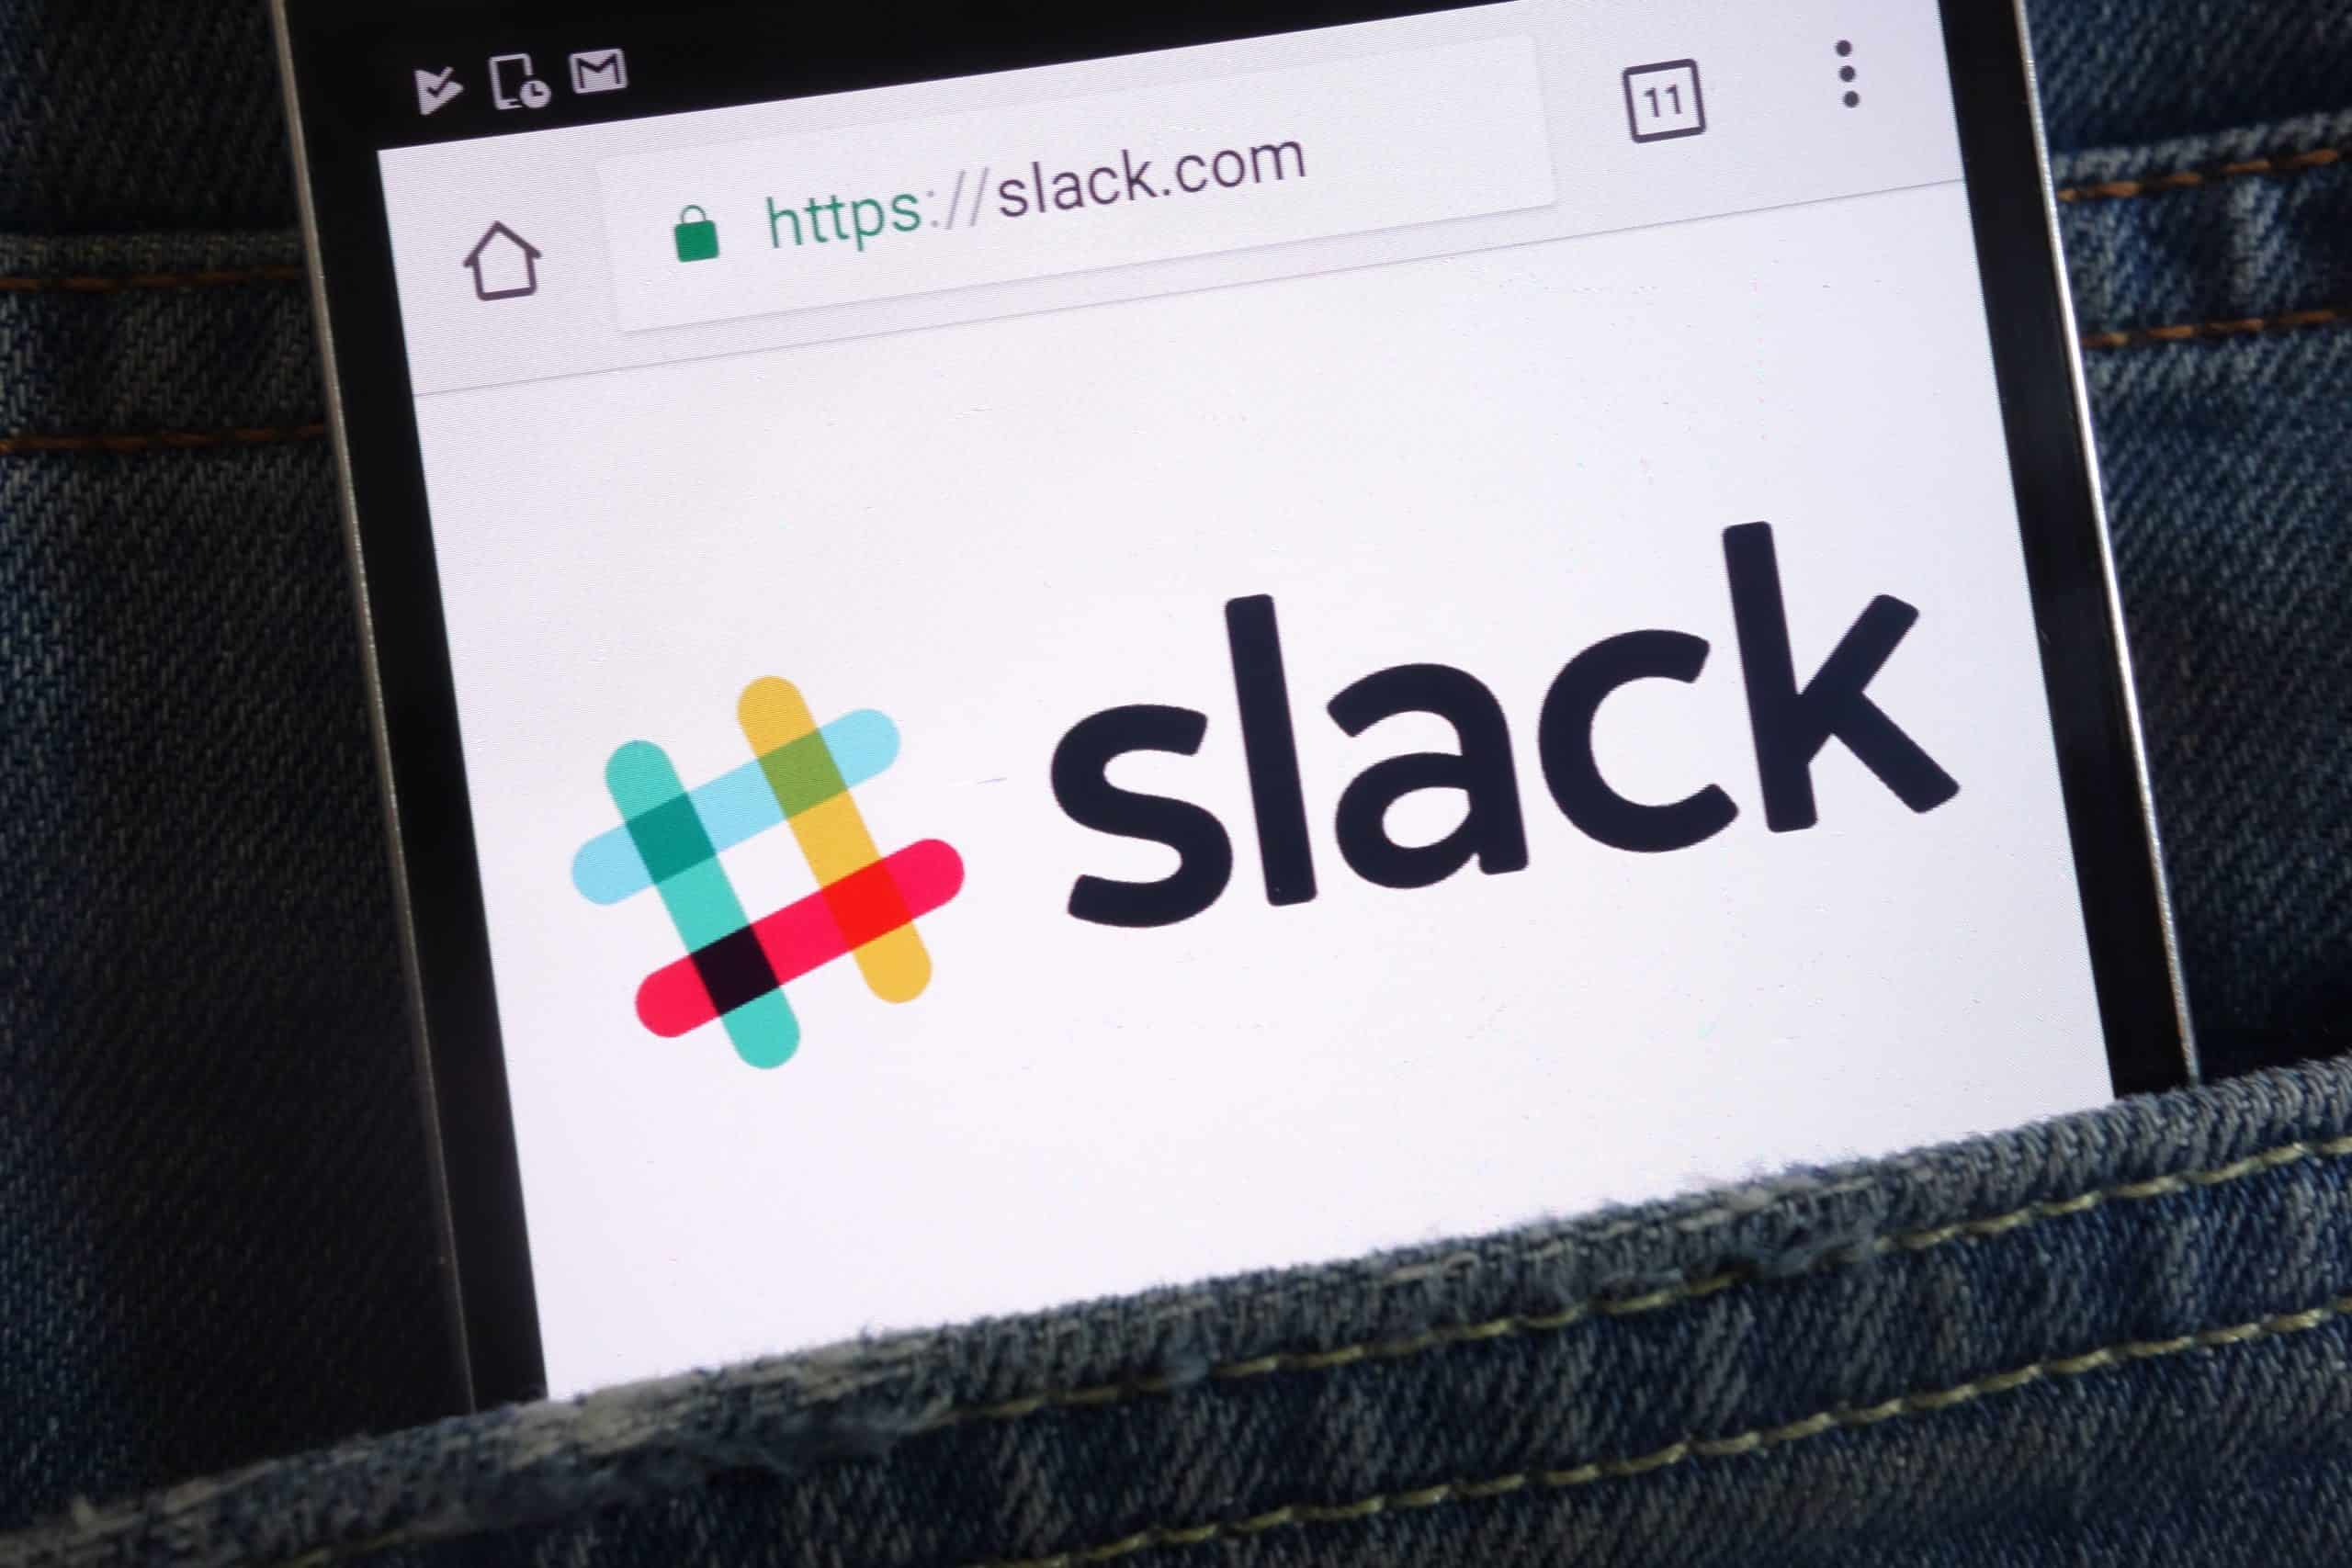 Slack hurries to fix direct message flaw that allowed harassment